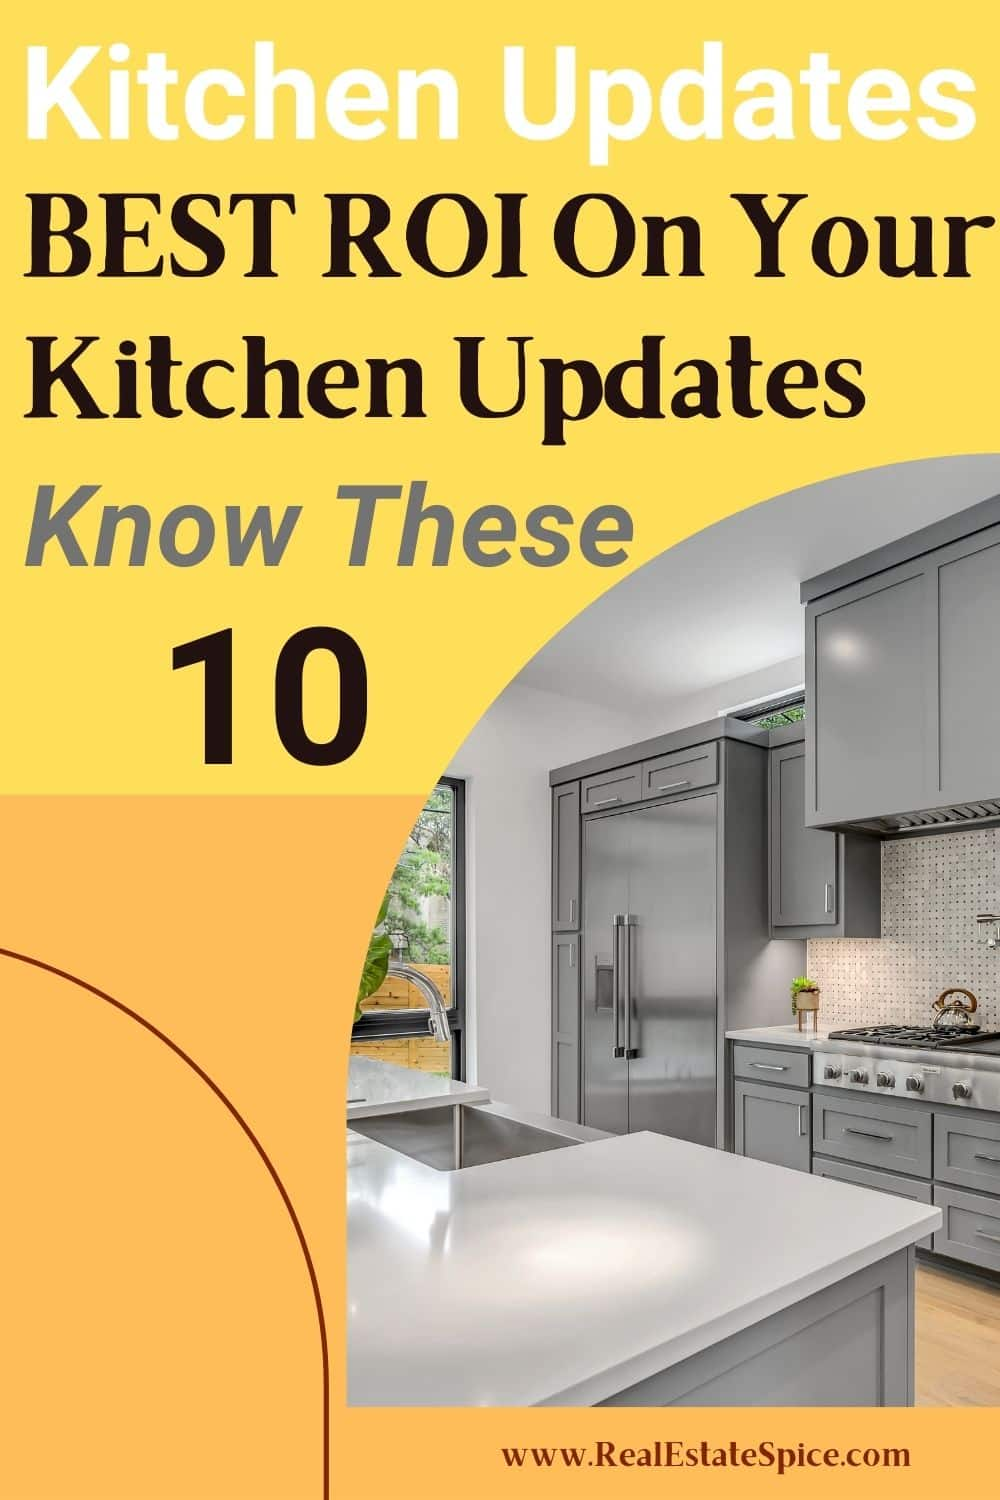 9 Easy, Inexpensive Kitchen Updates To Sell Your House and Attract Buyers